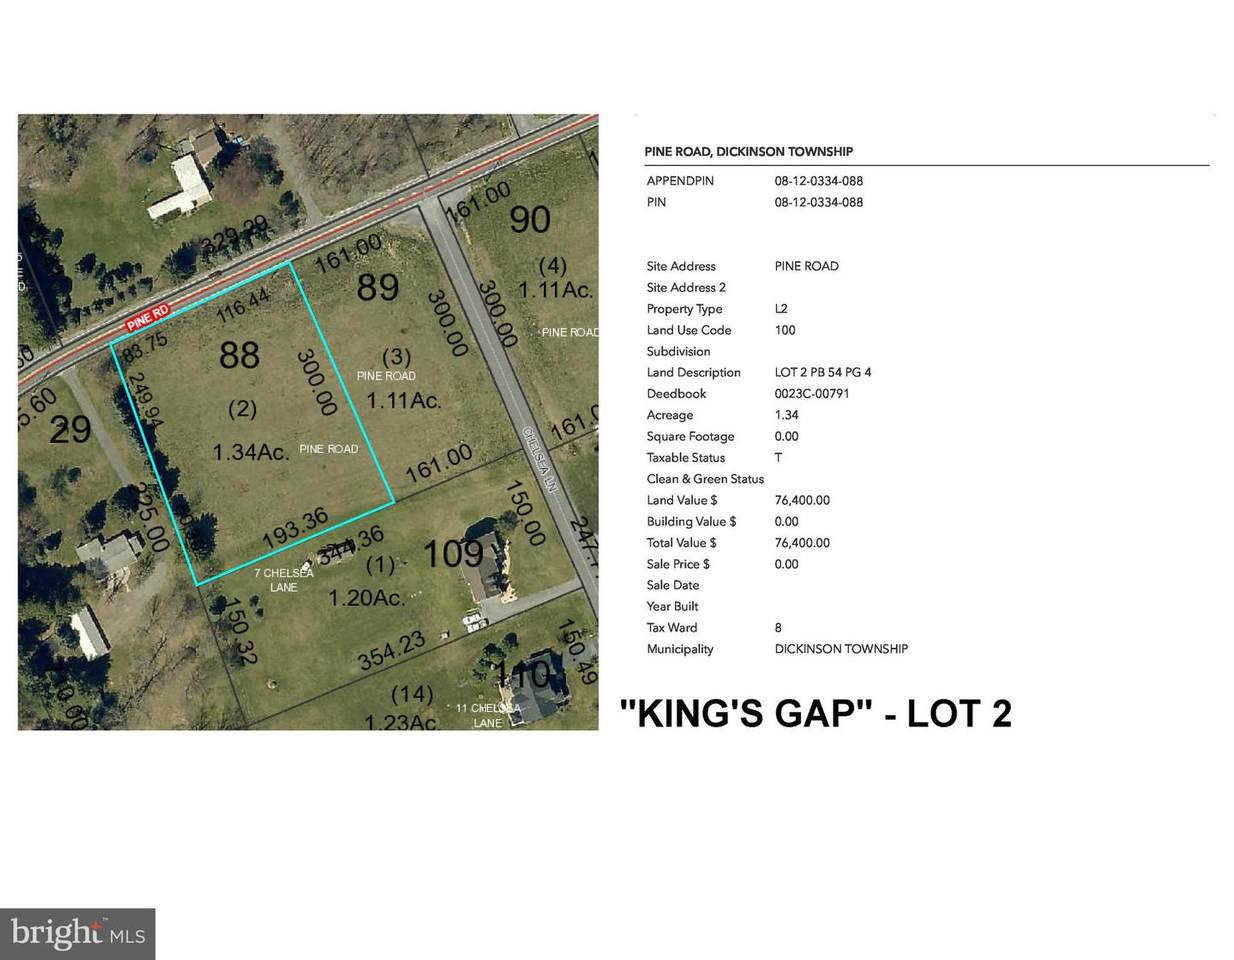 Kings Gap - Pine Road - Photo 1